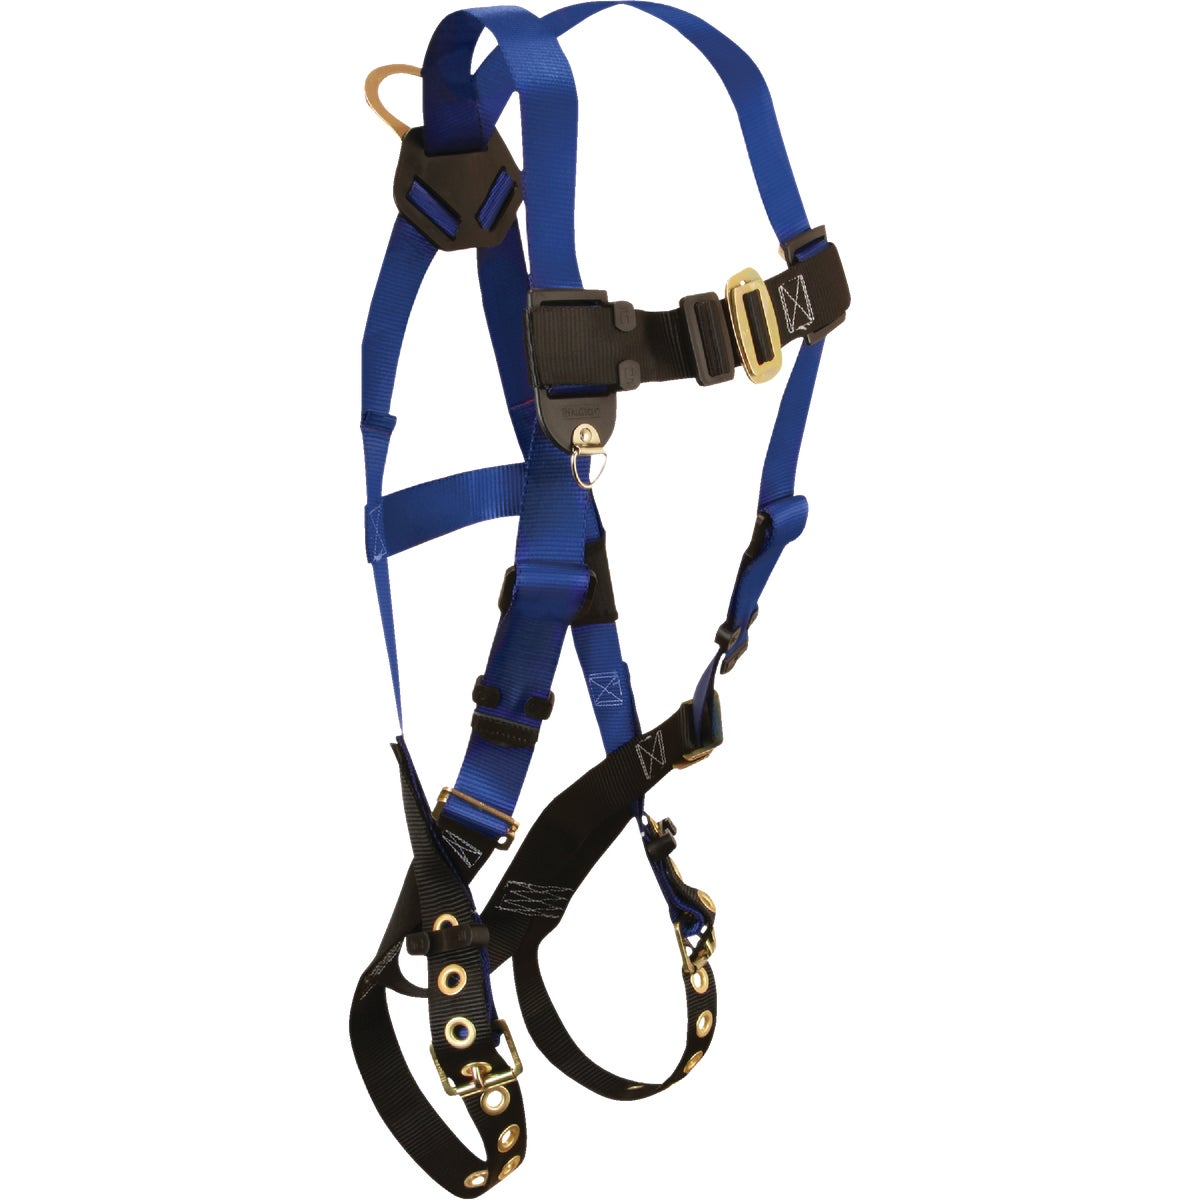 1X/2X HARNESS - A7016X/2X by Fall Tech